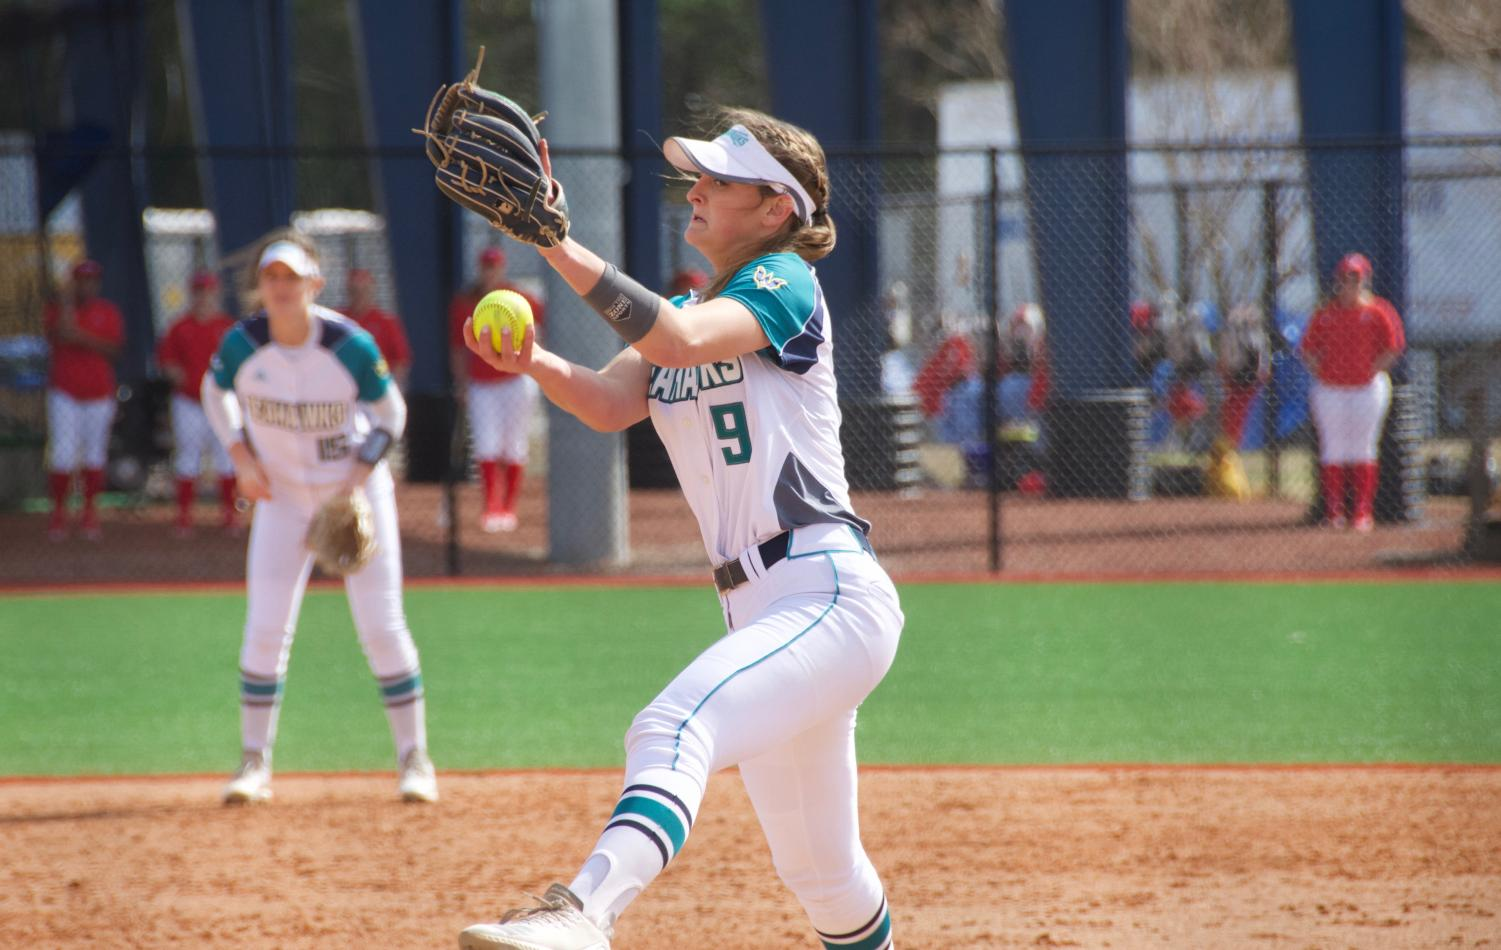 Janel Gamache (9) throws a pitch during UNCW's matchup with Howard in the Fairfield Inn & Suites Seahawk Softball Bash on Feb. 15, 2019.